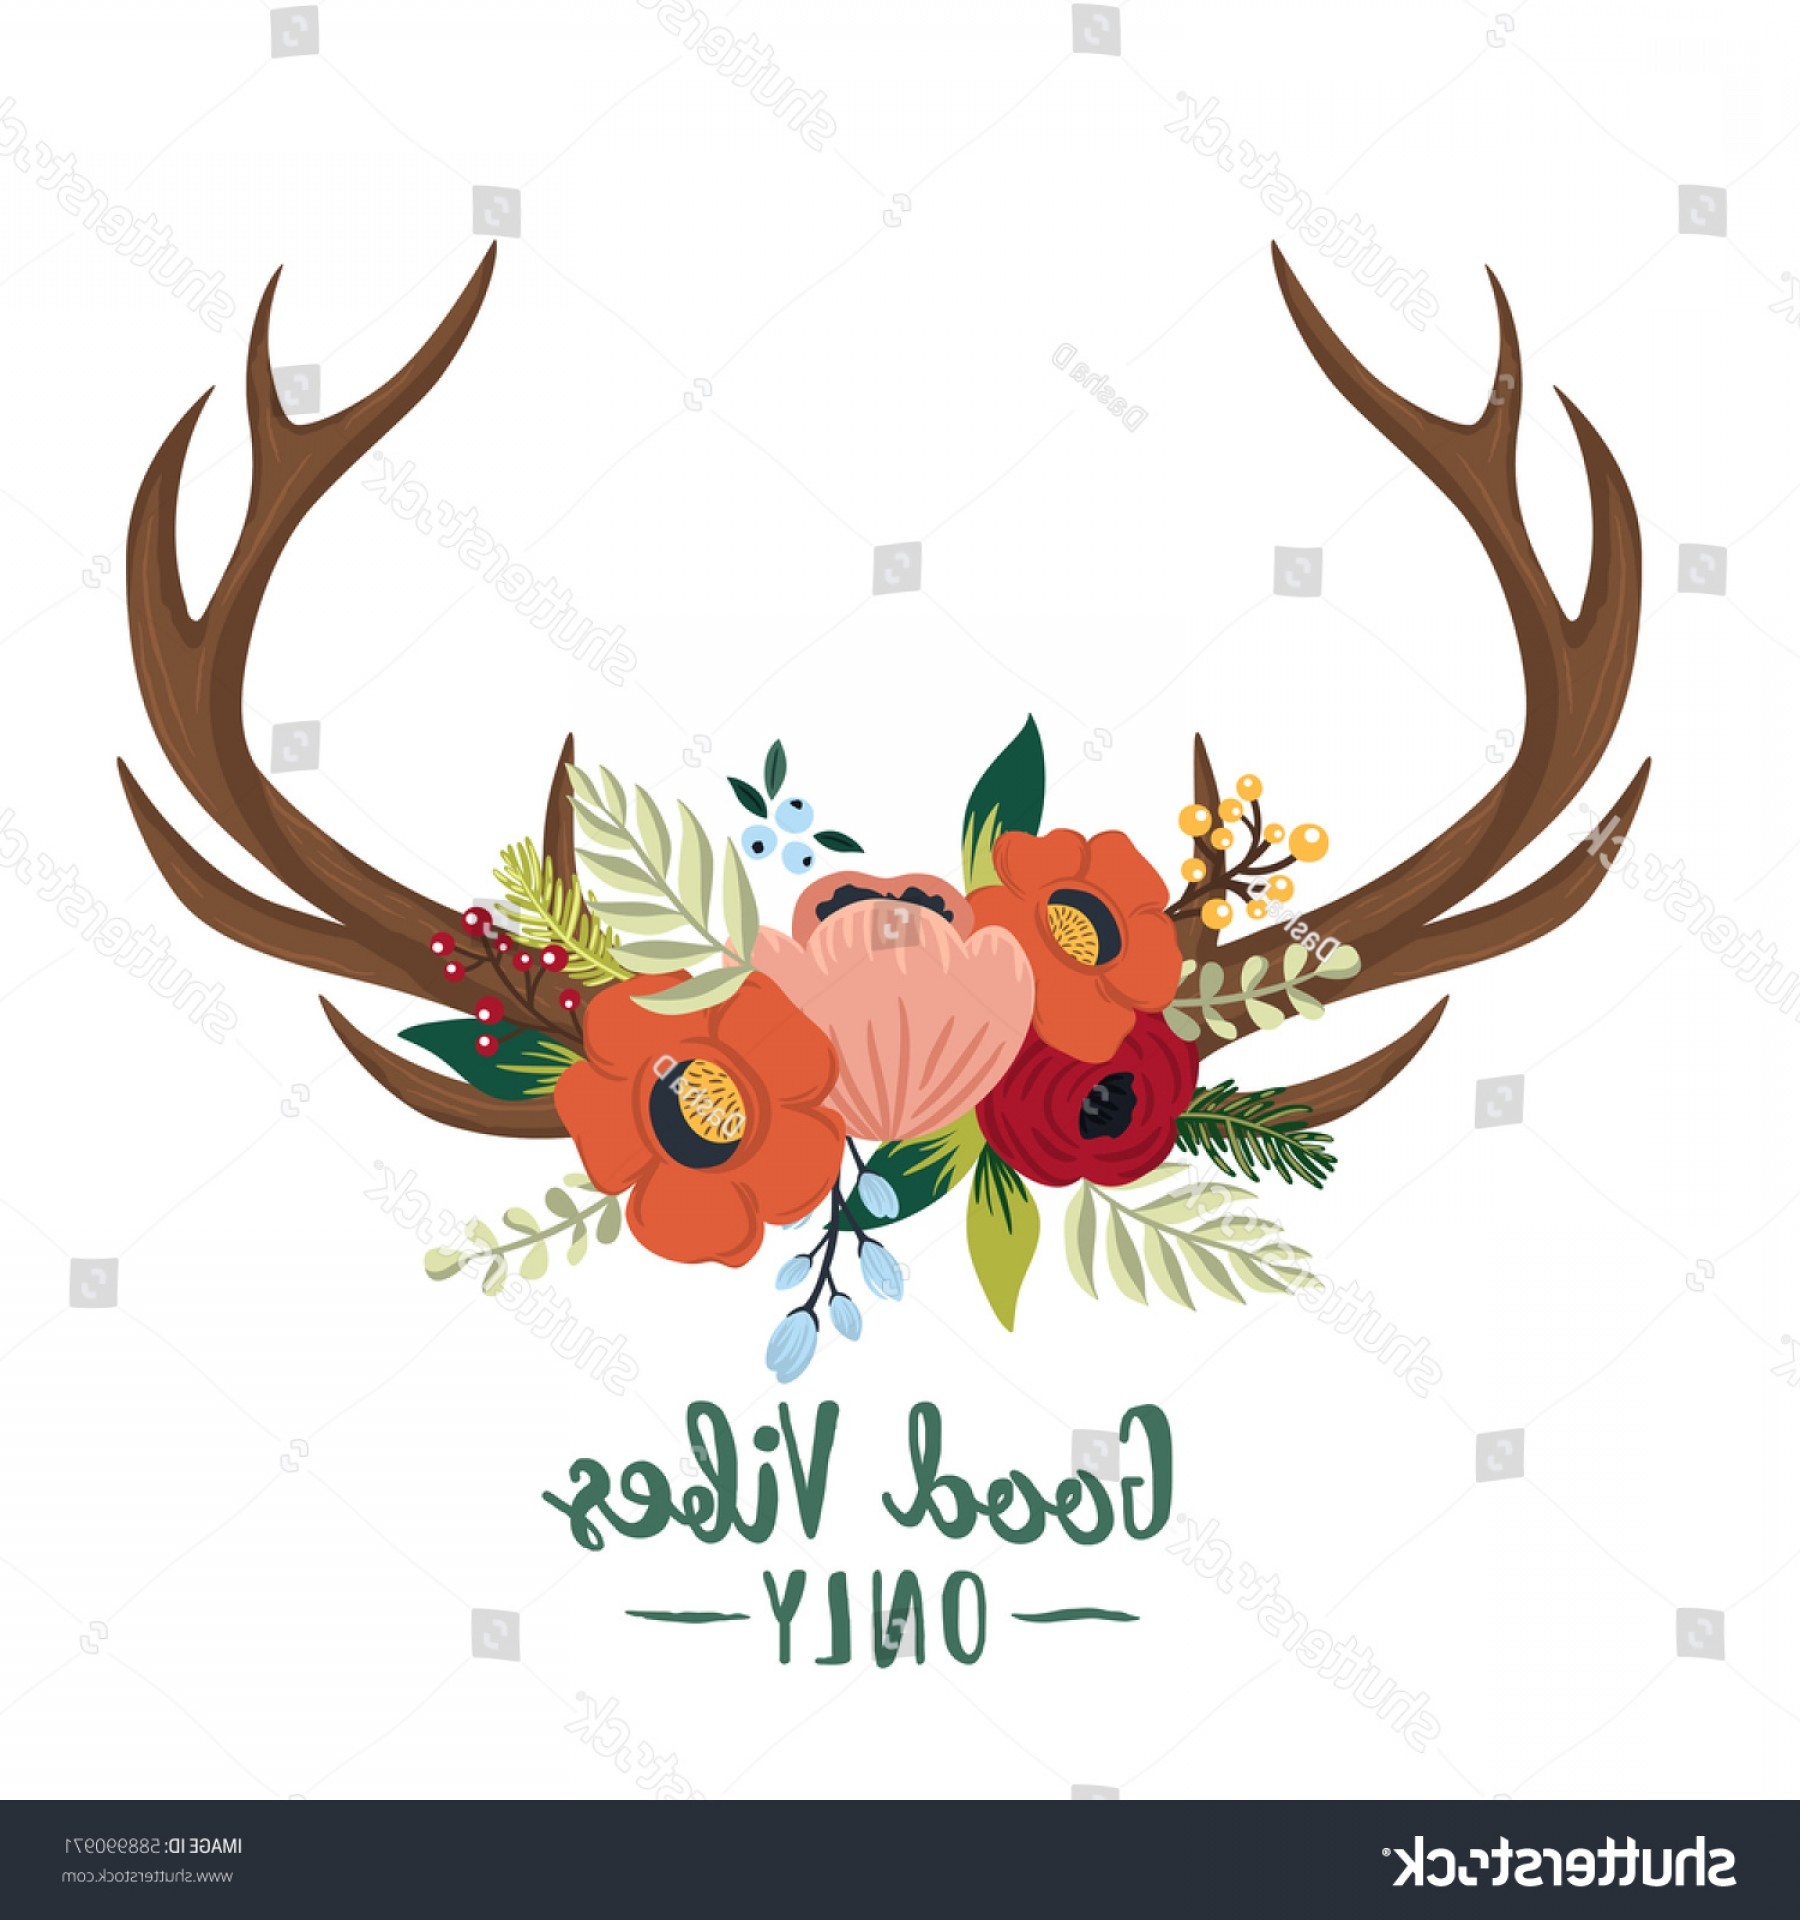 Bohemian Flowers Vector: Vector Floral Antlers Bohemian Style Hand